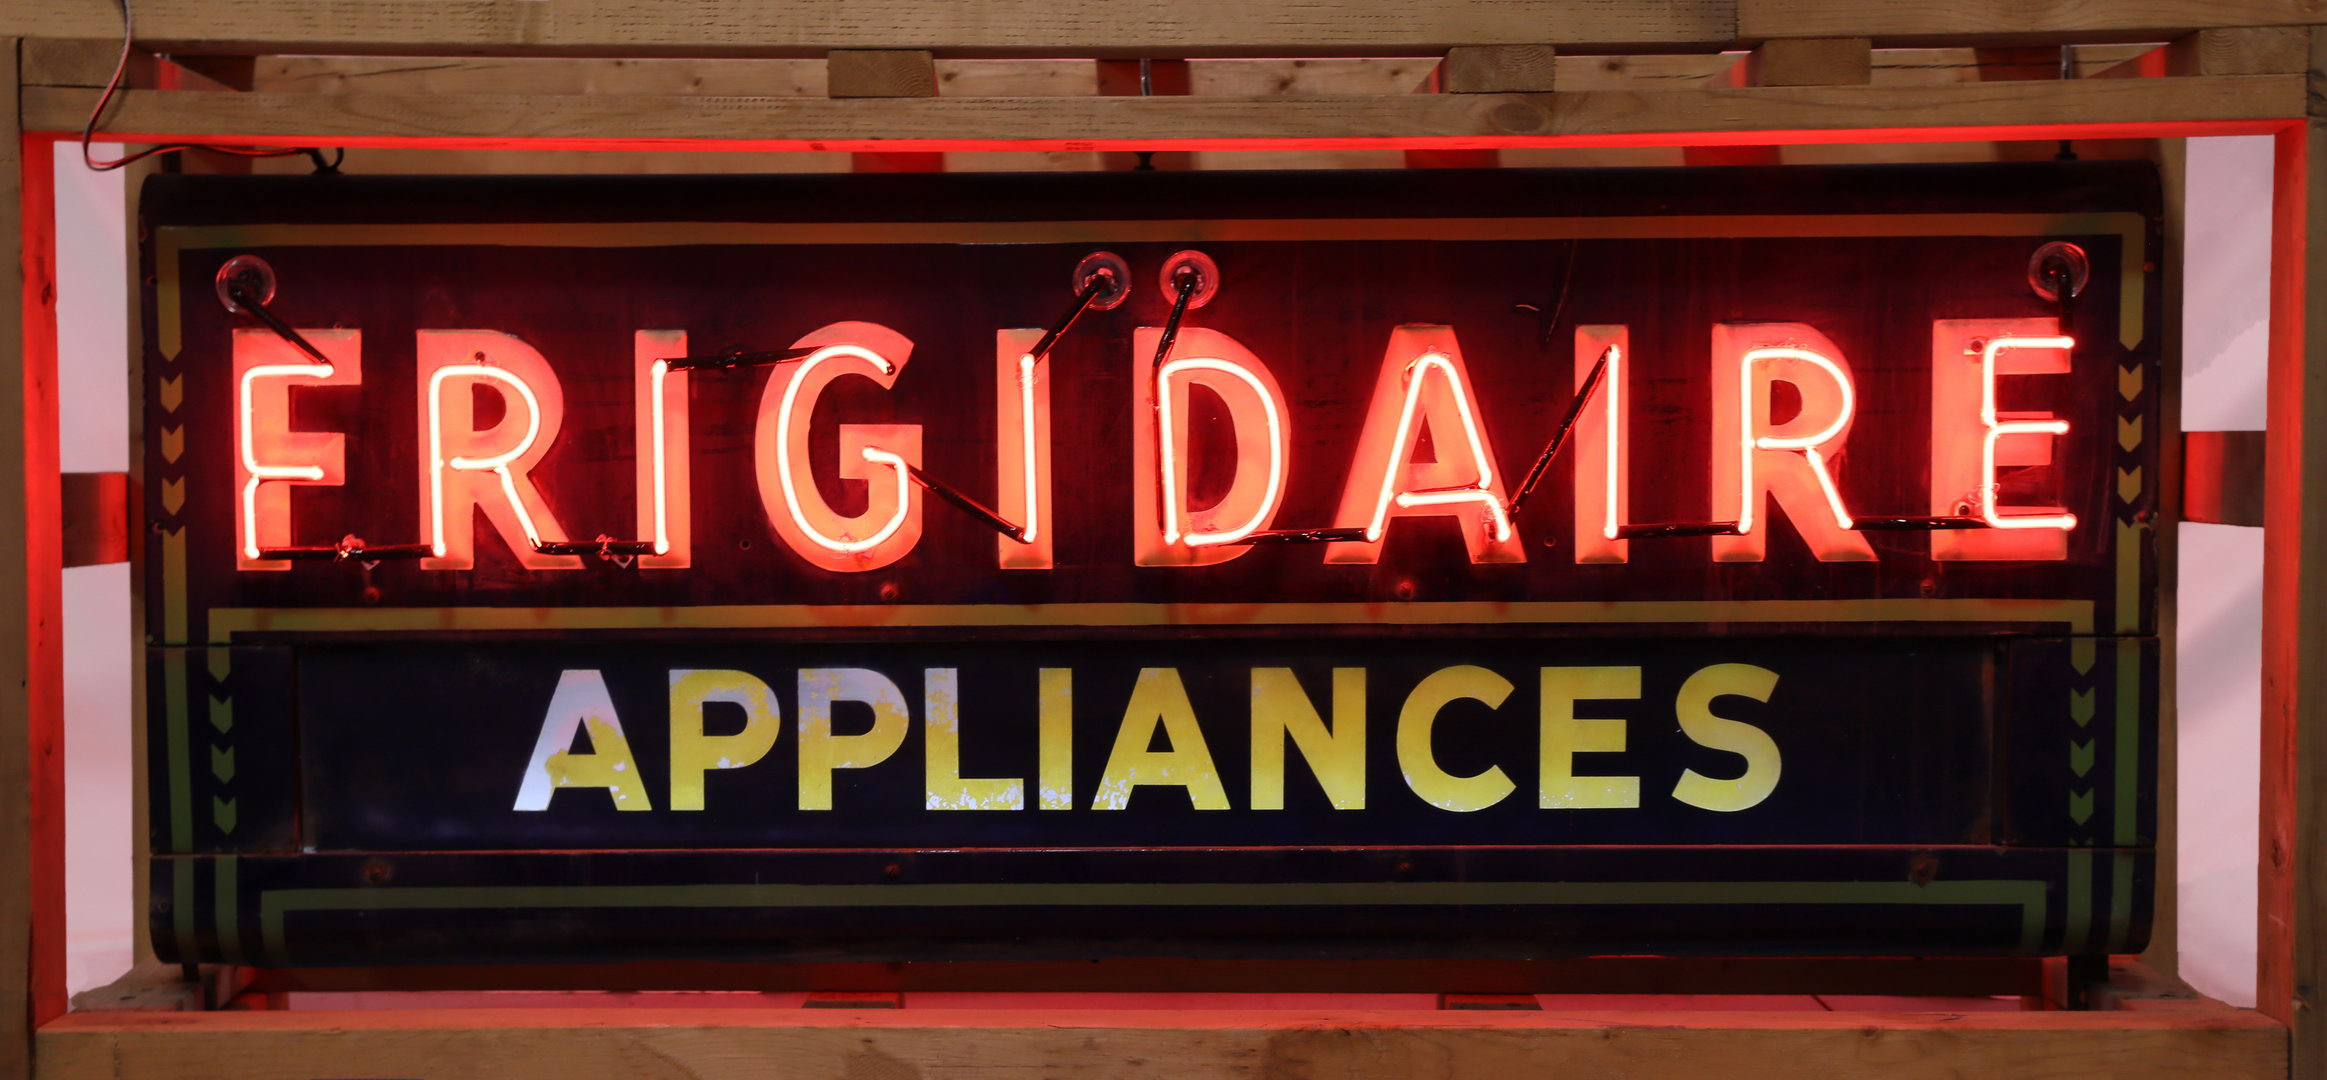 FRIGIDAIRE DSP Porcelain Neon Can Sign